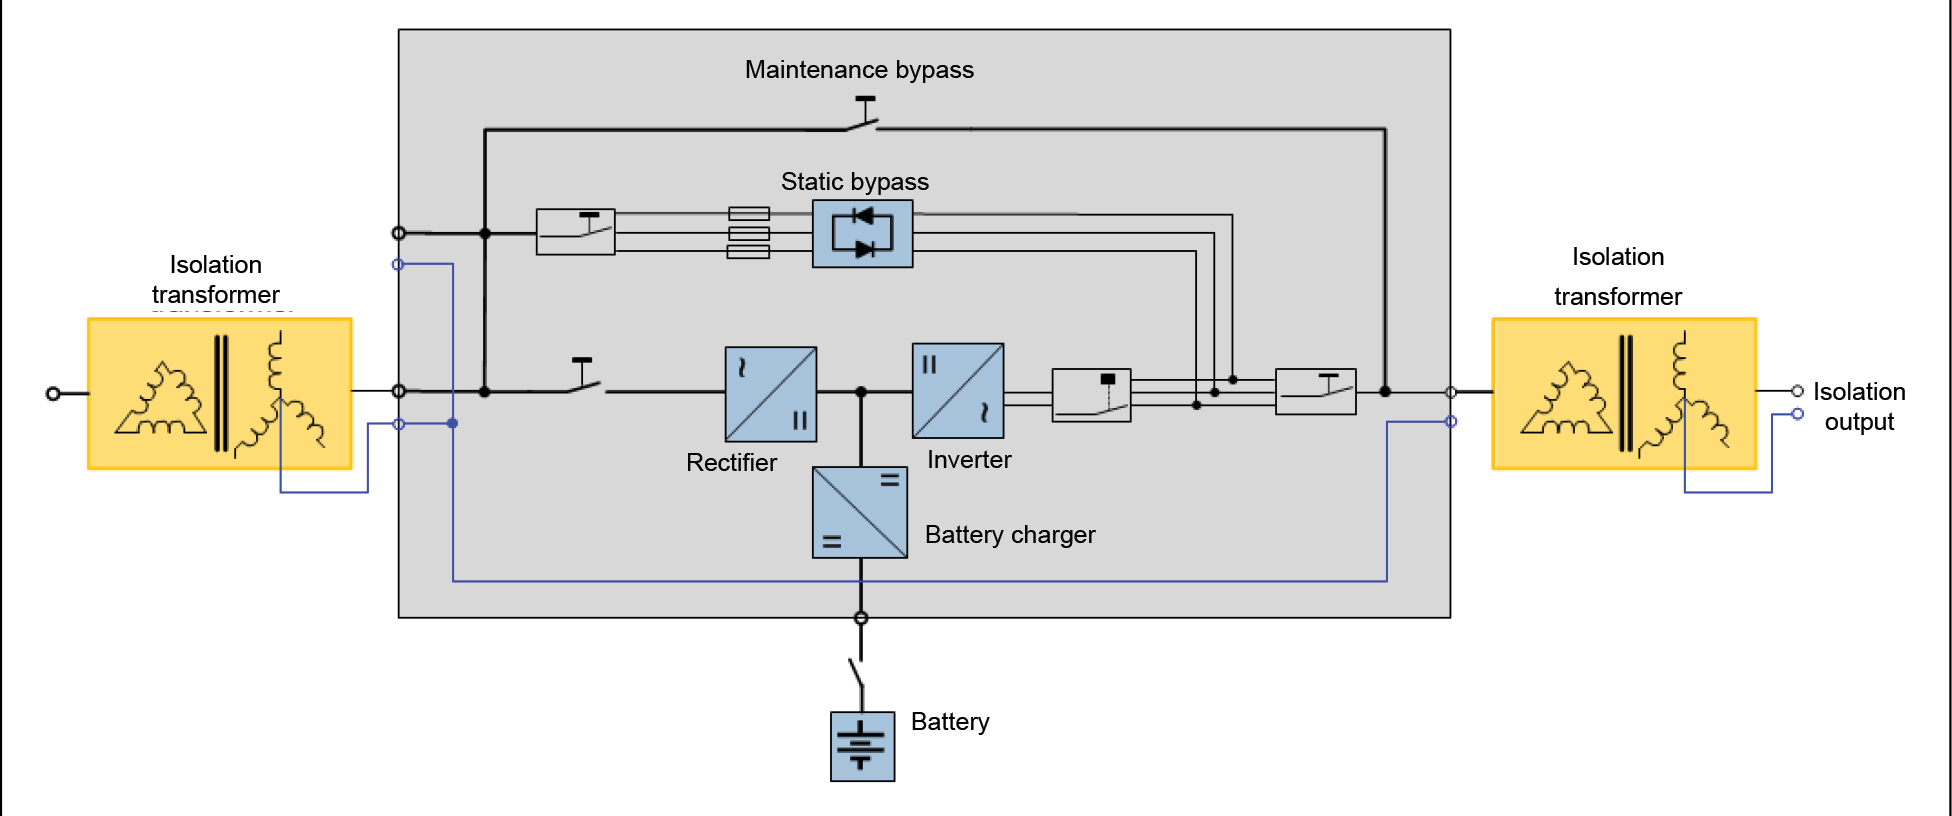 hight resolution of 4 a 4 wire diagramme of a transformer based ups